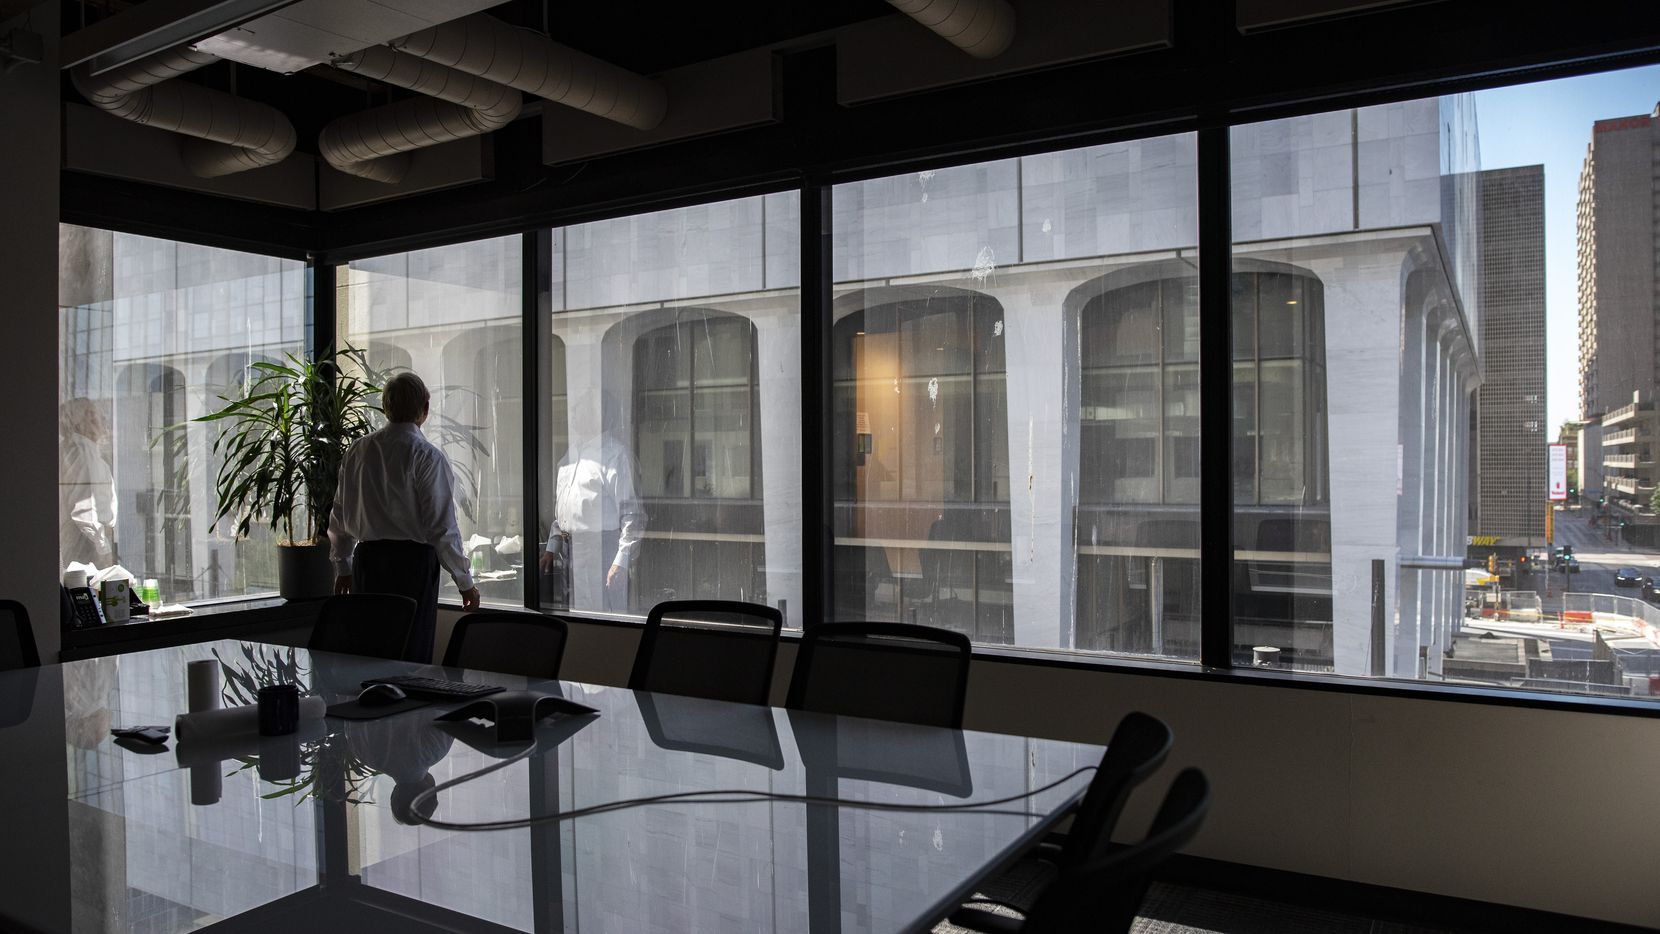 Jerry Merriman, president and founder of Merriman Anderson Architects, looks at The National building from a conference room inside his offices in downtown Dallas on Aug. 12.